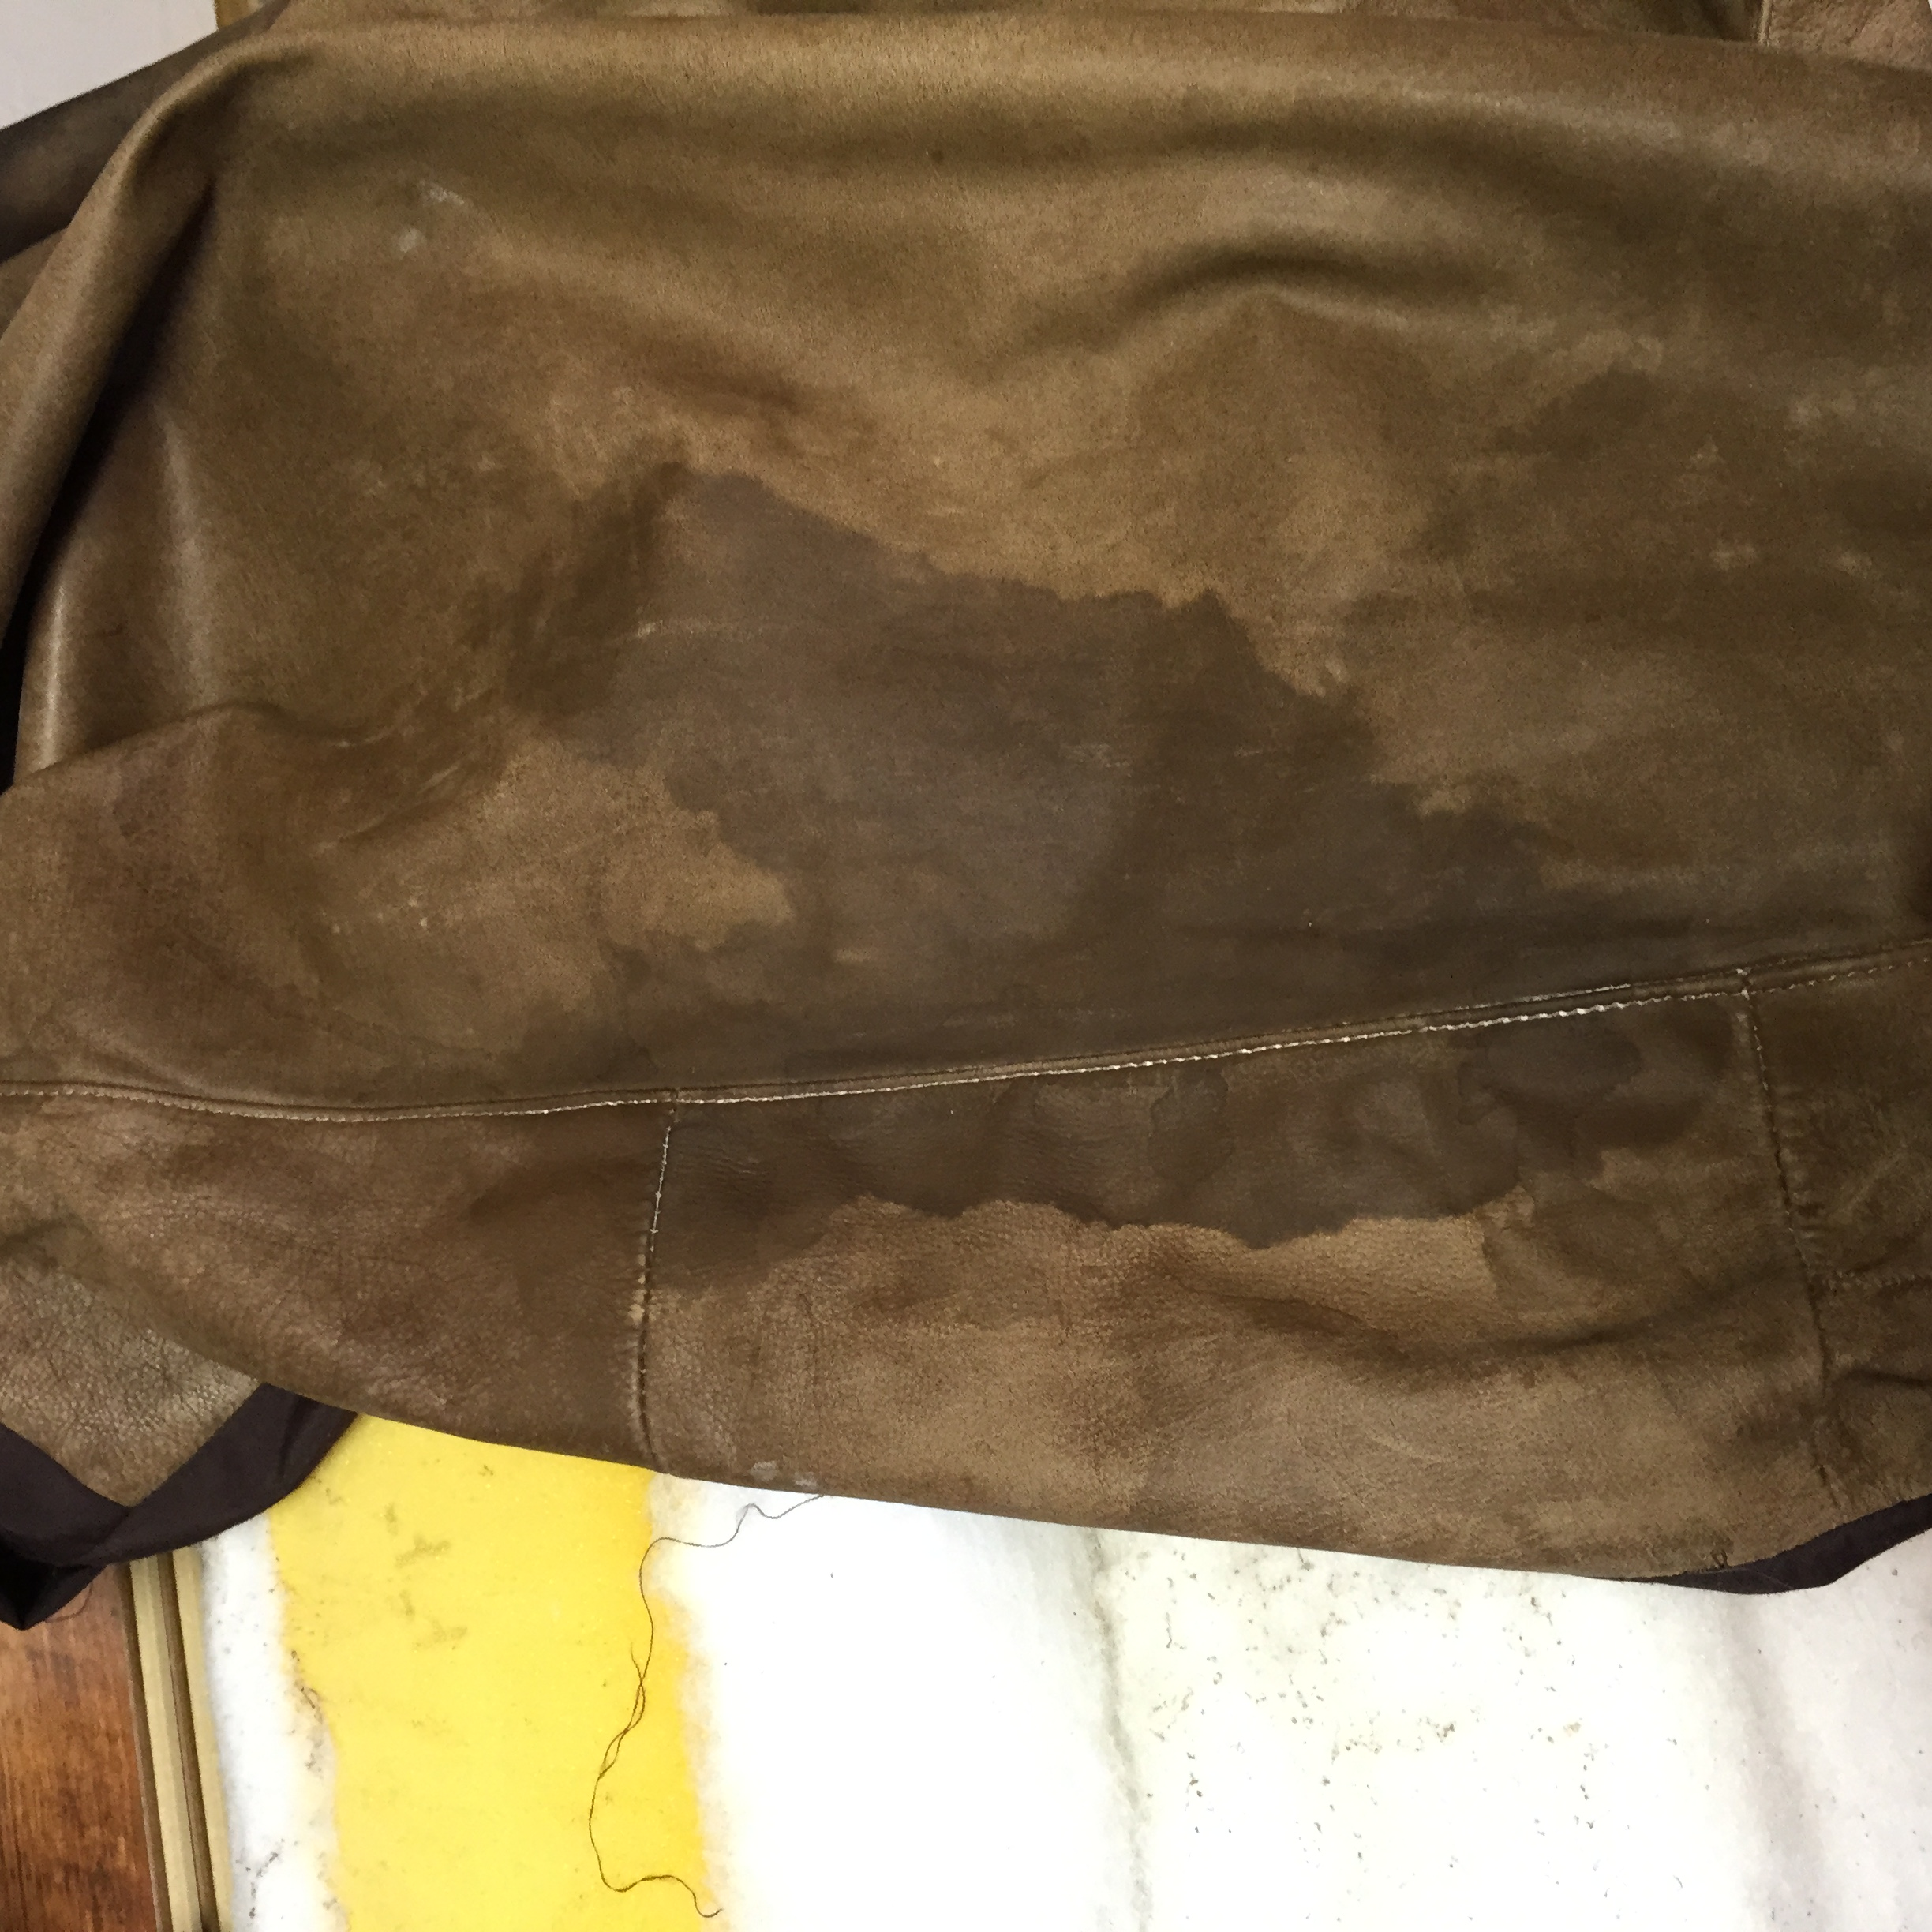 Cat Urine Stain On Nubuck Leather Couch